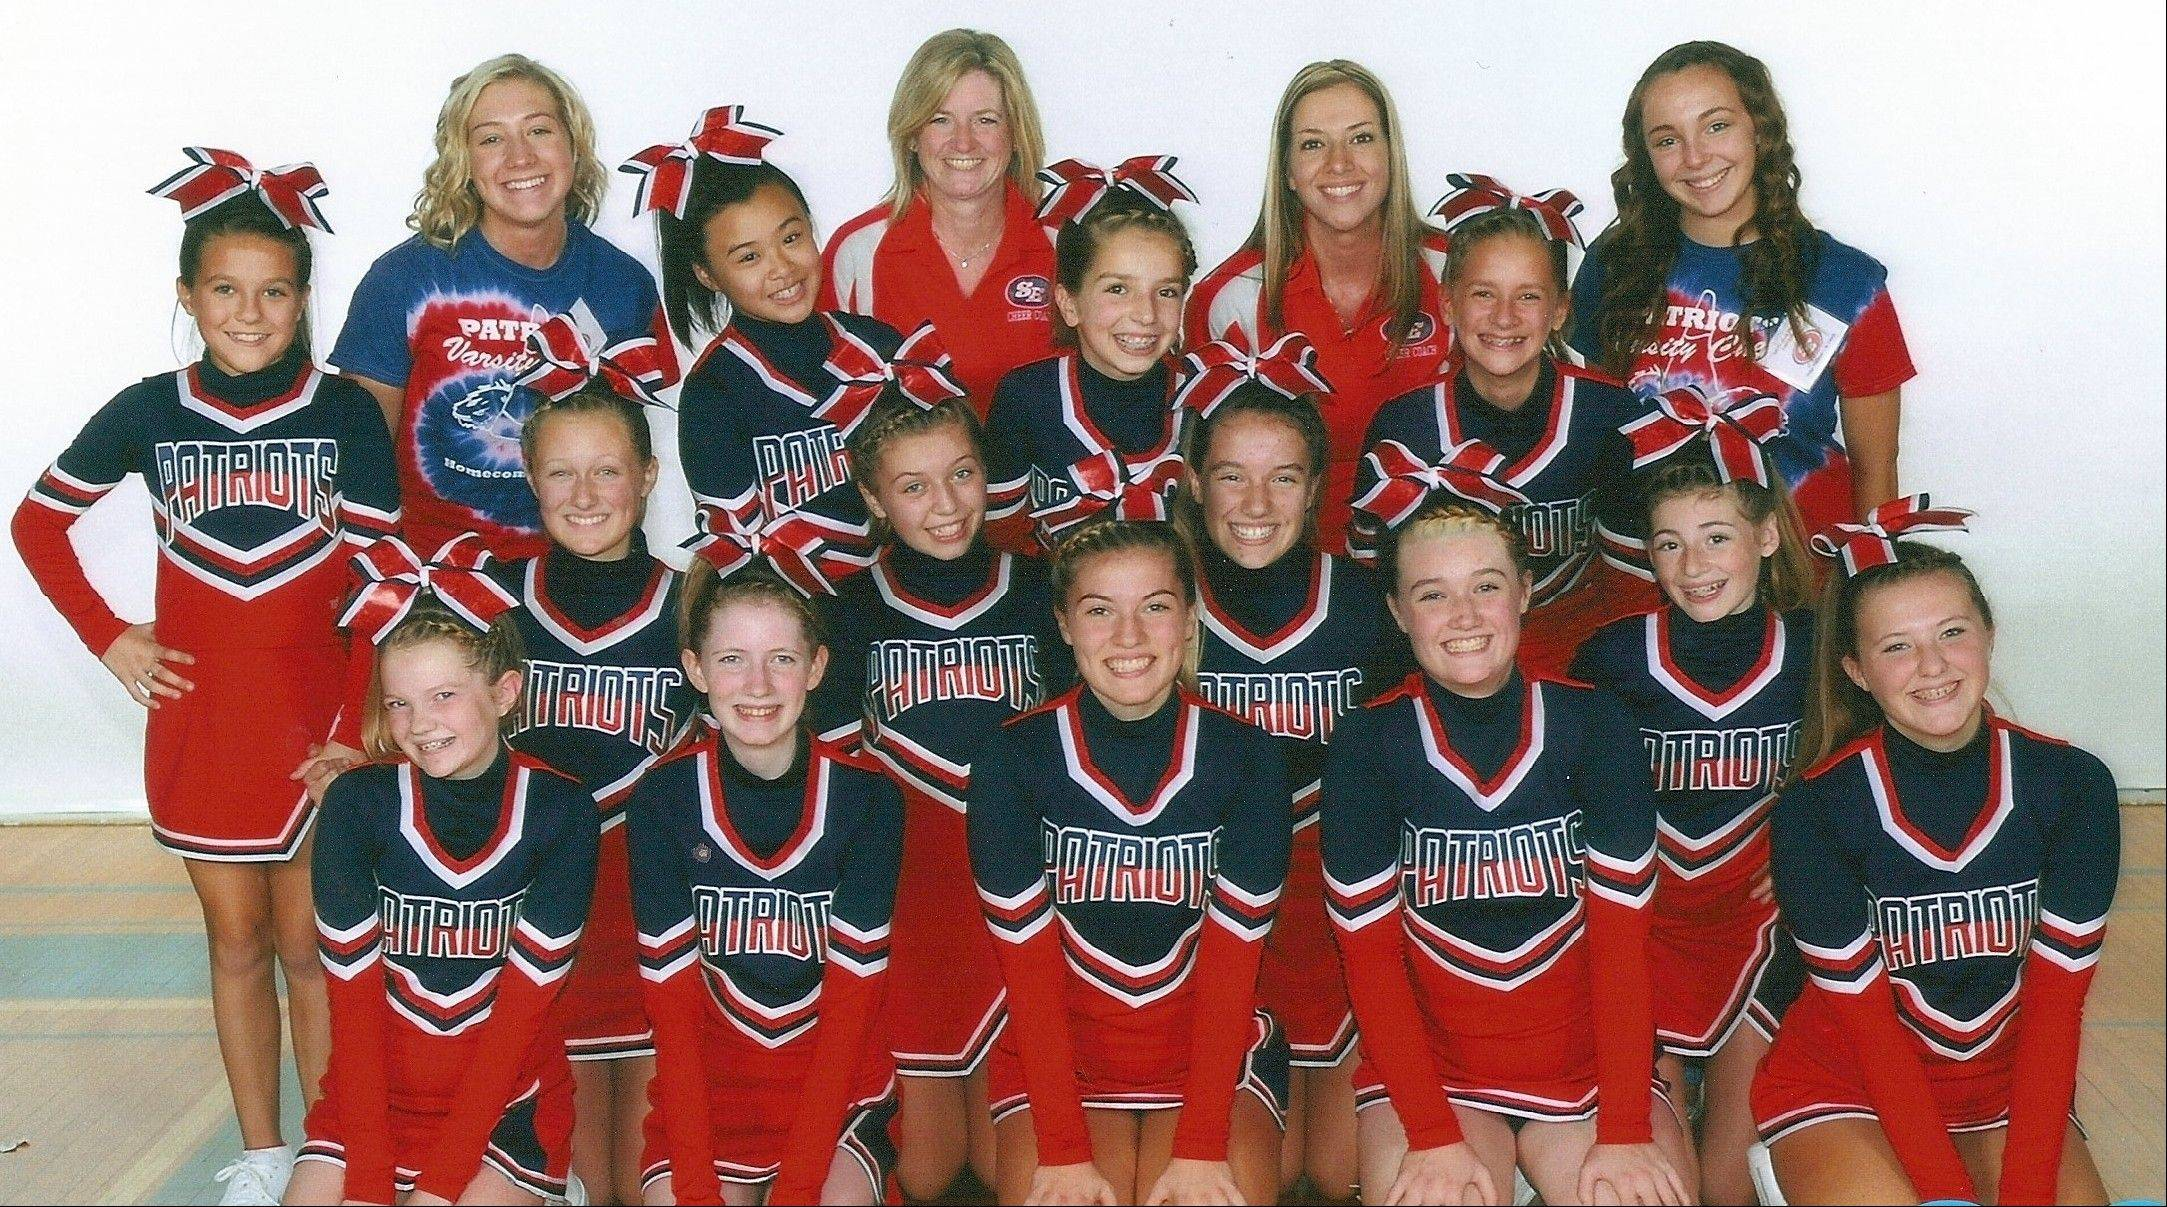 The South Elgin Varsity Cheer Team will compete at the Cheeribean: 2012 Cheer and Poms Competition at the Sears Centre Arena in Hoffman Estates on Saturday, Nov. 3.